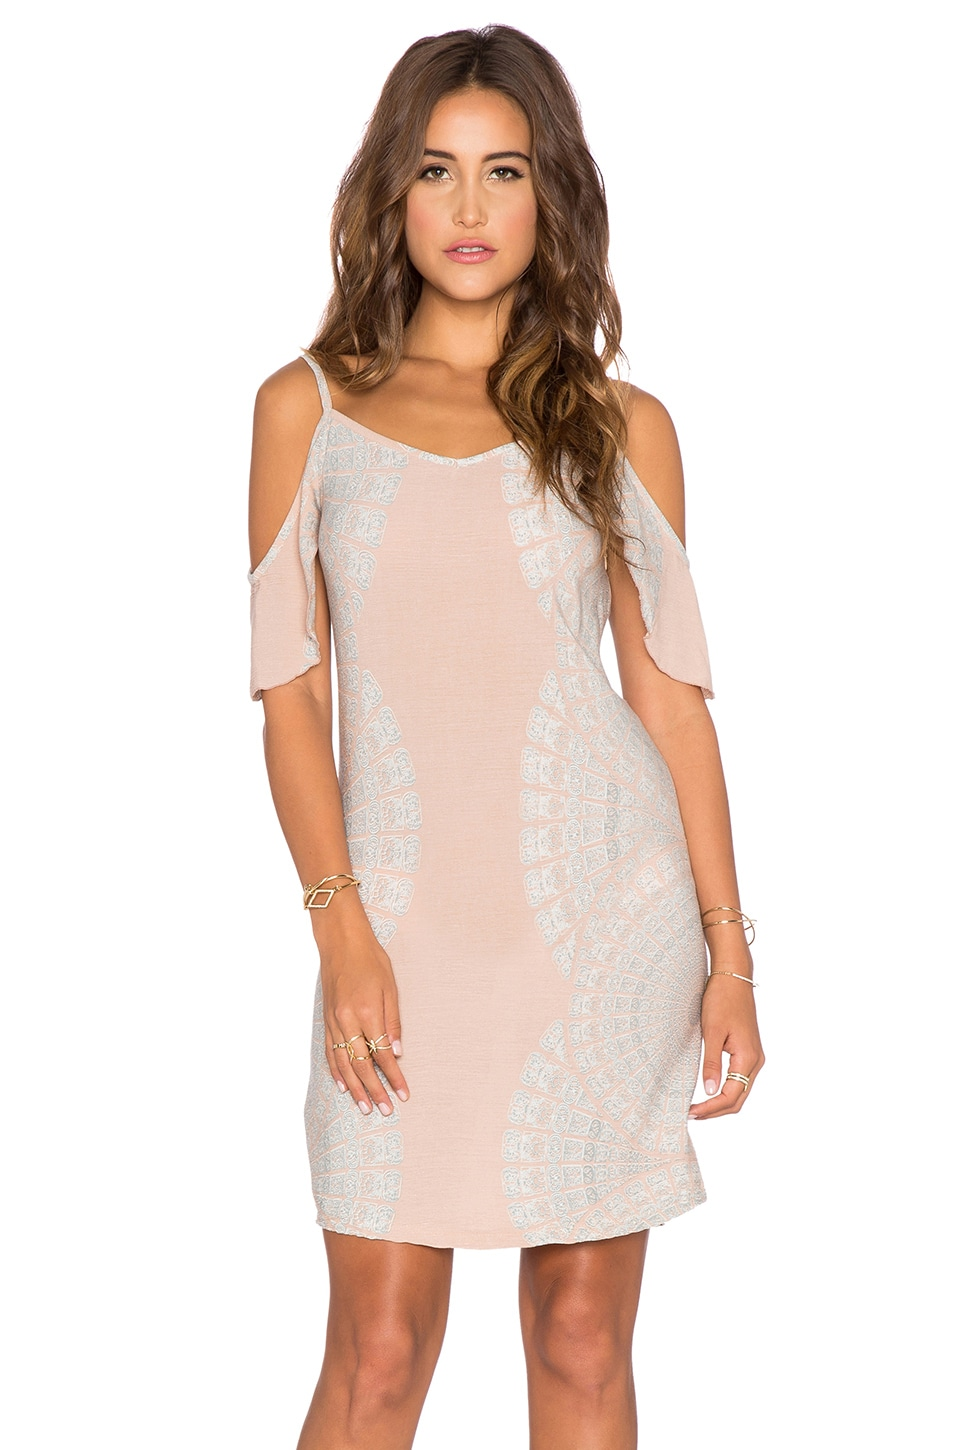 YIREH Mita Cold Shoulder Dress in Sundial